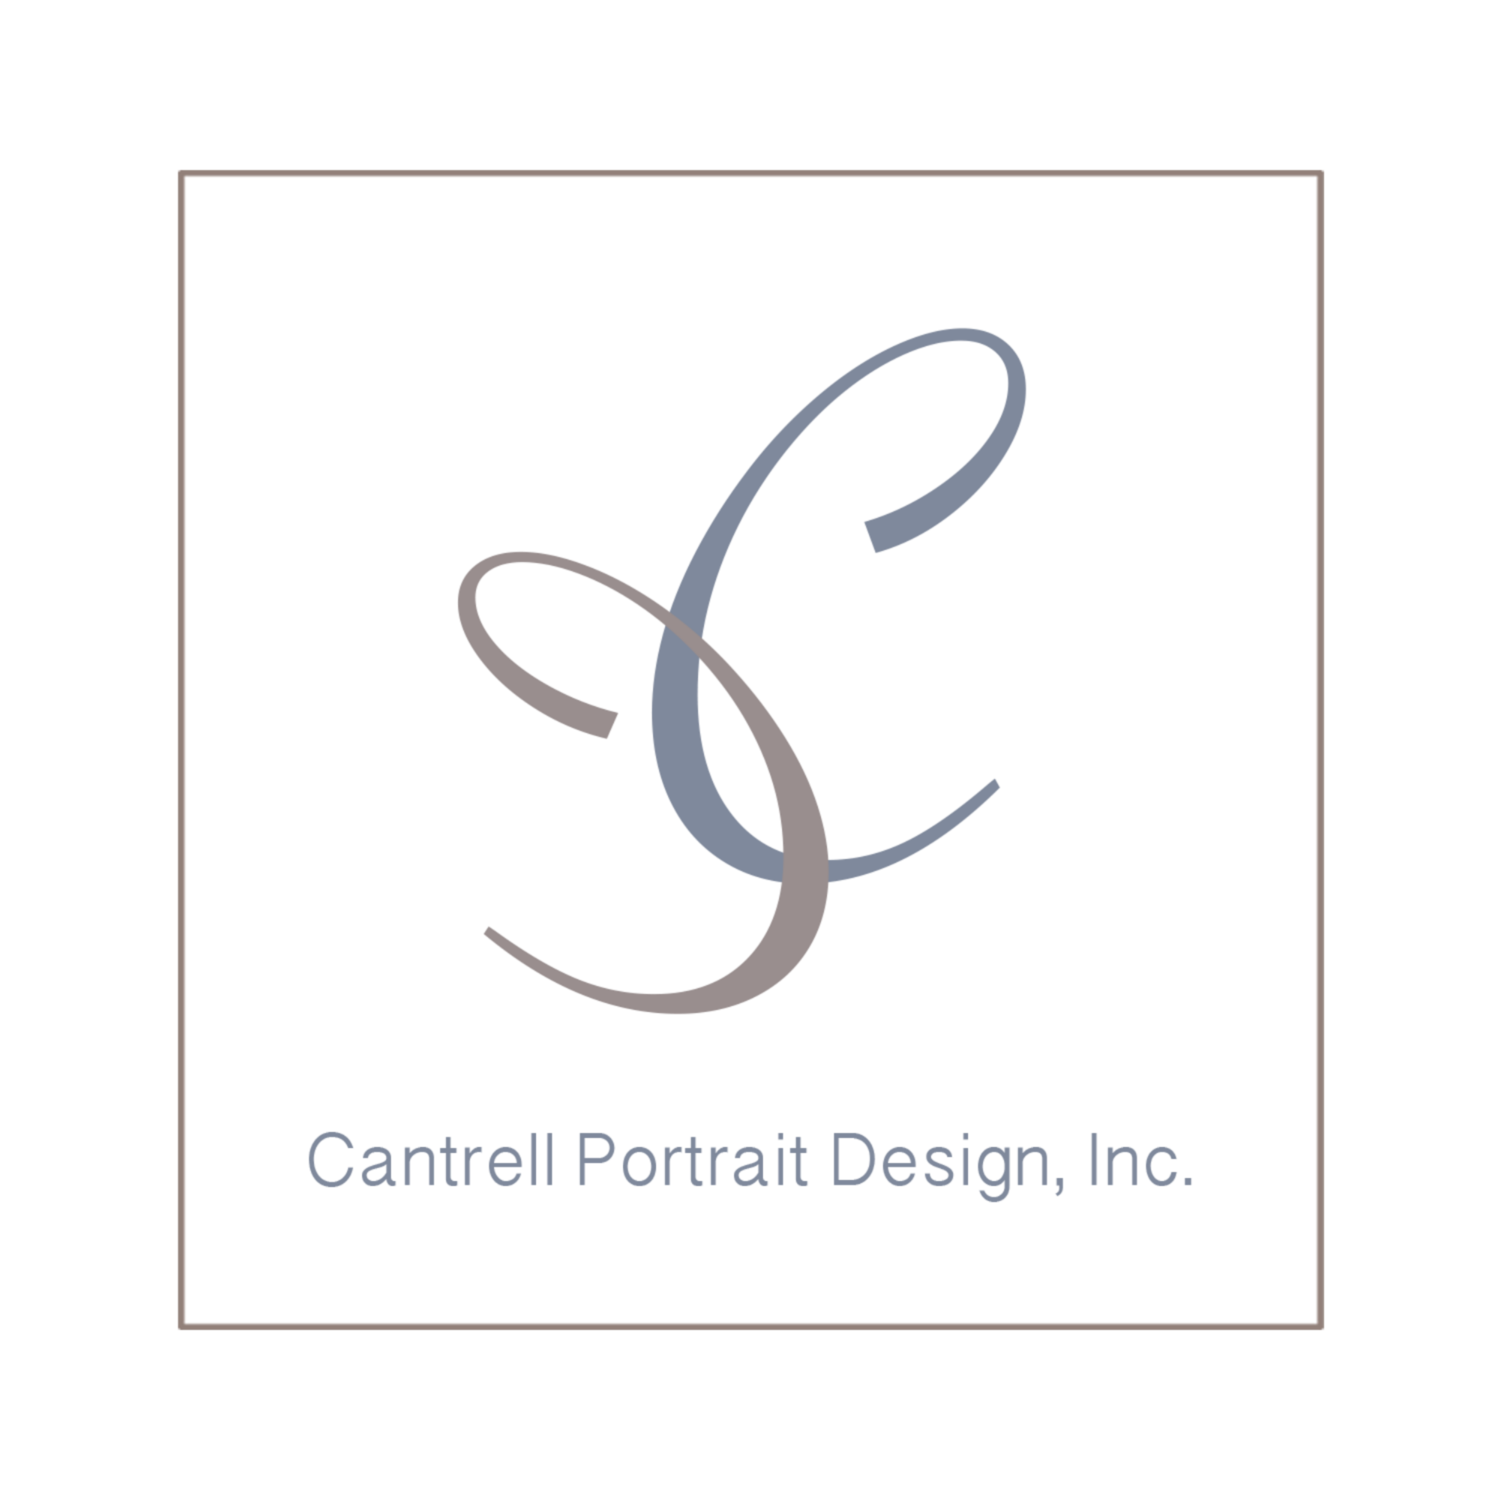 Cantrell Portrait Design, Inc.